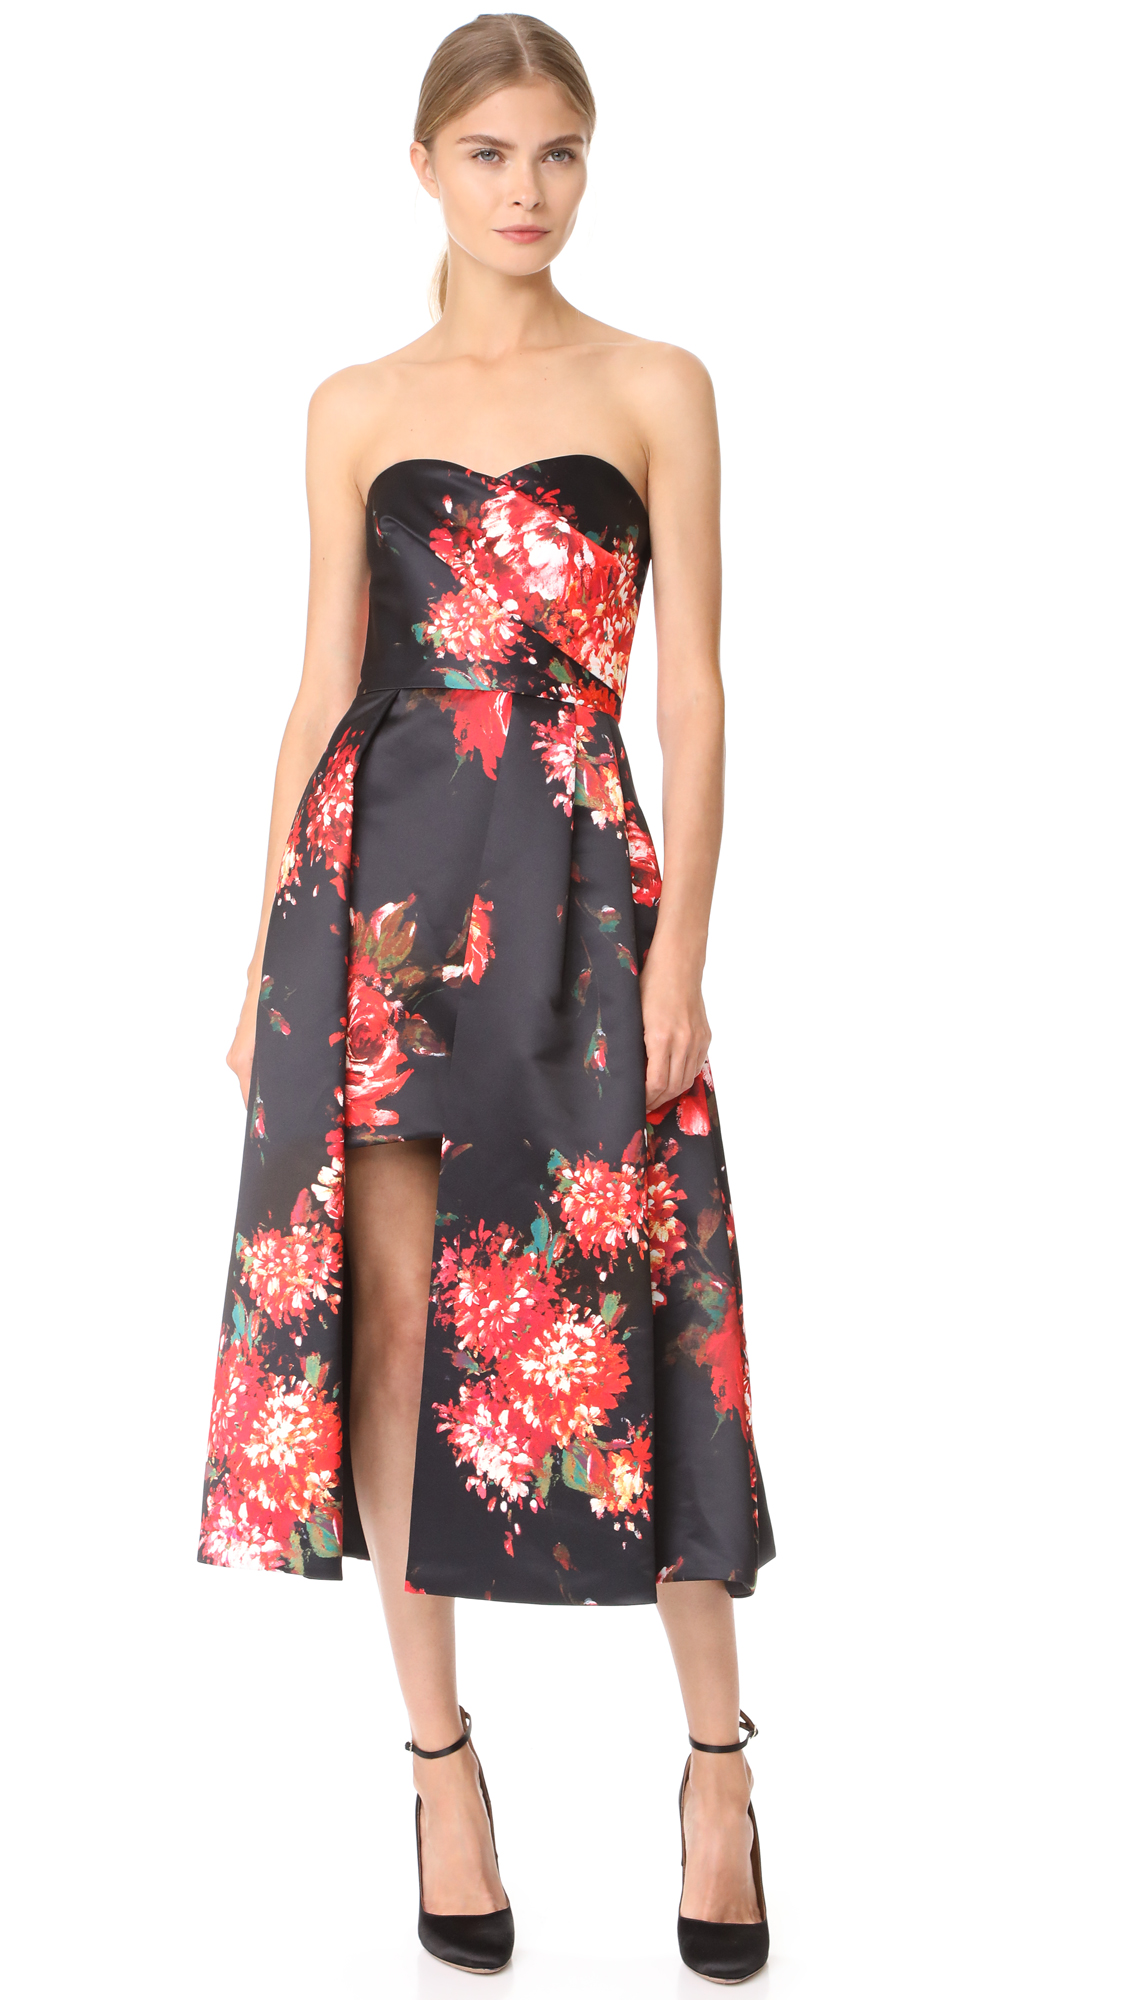 Floral Print Dress by Black Halo